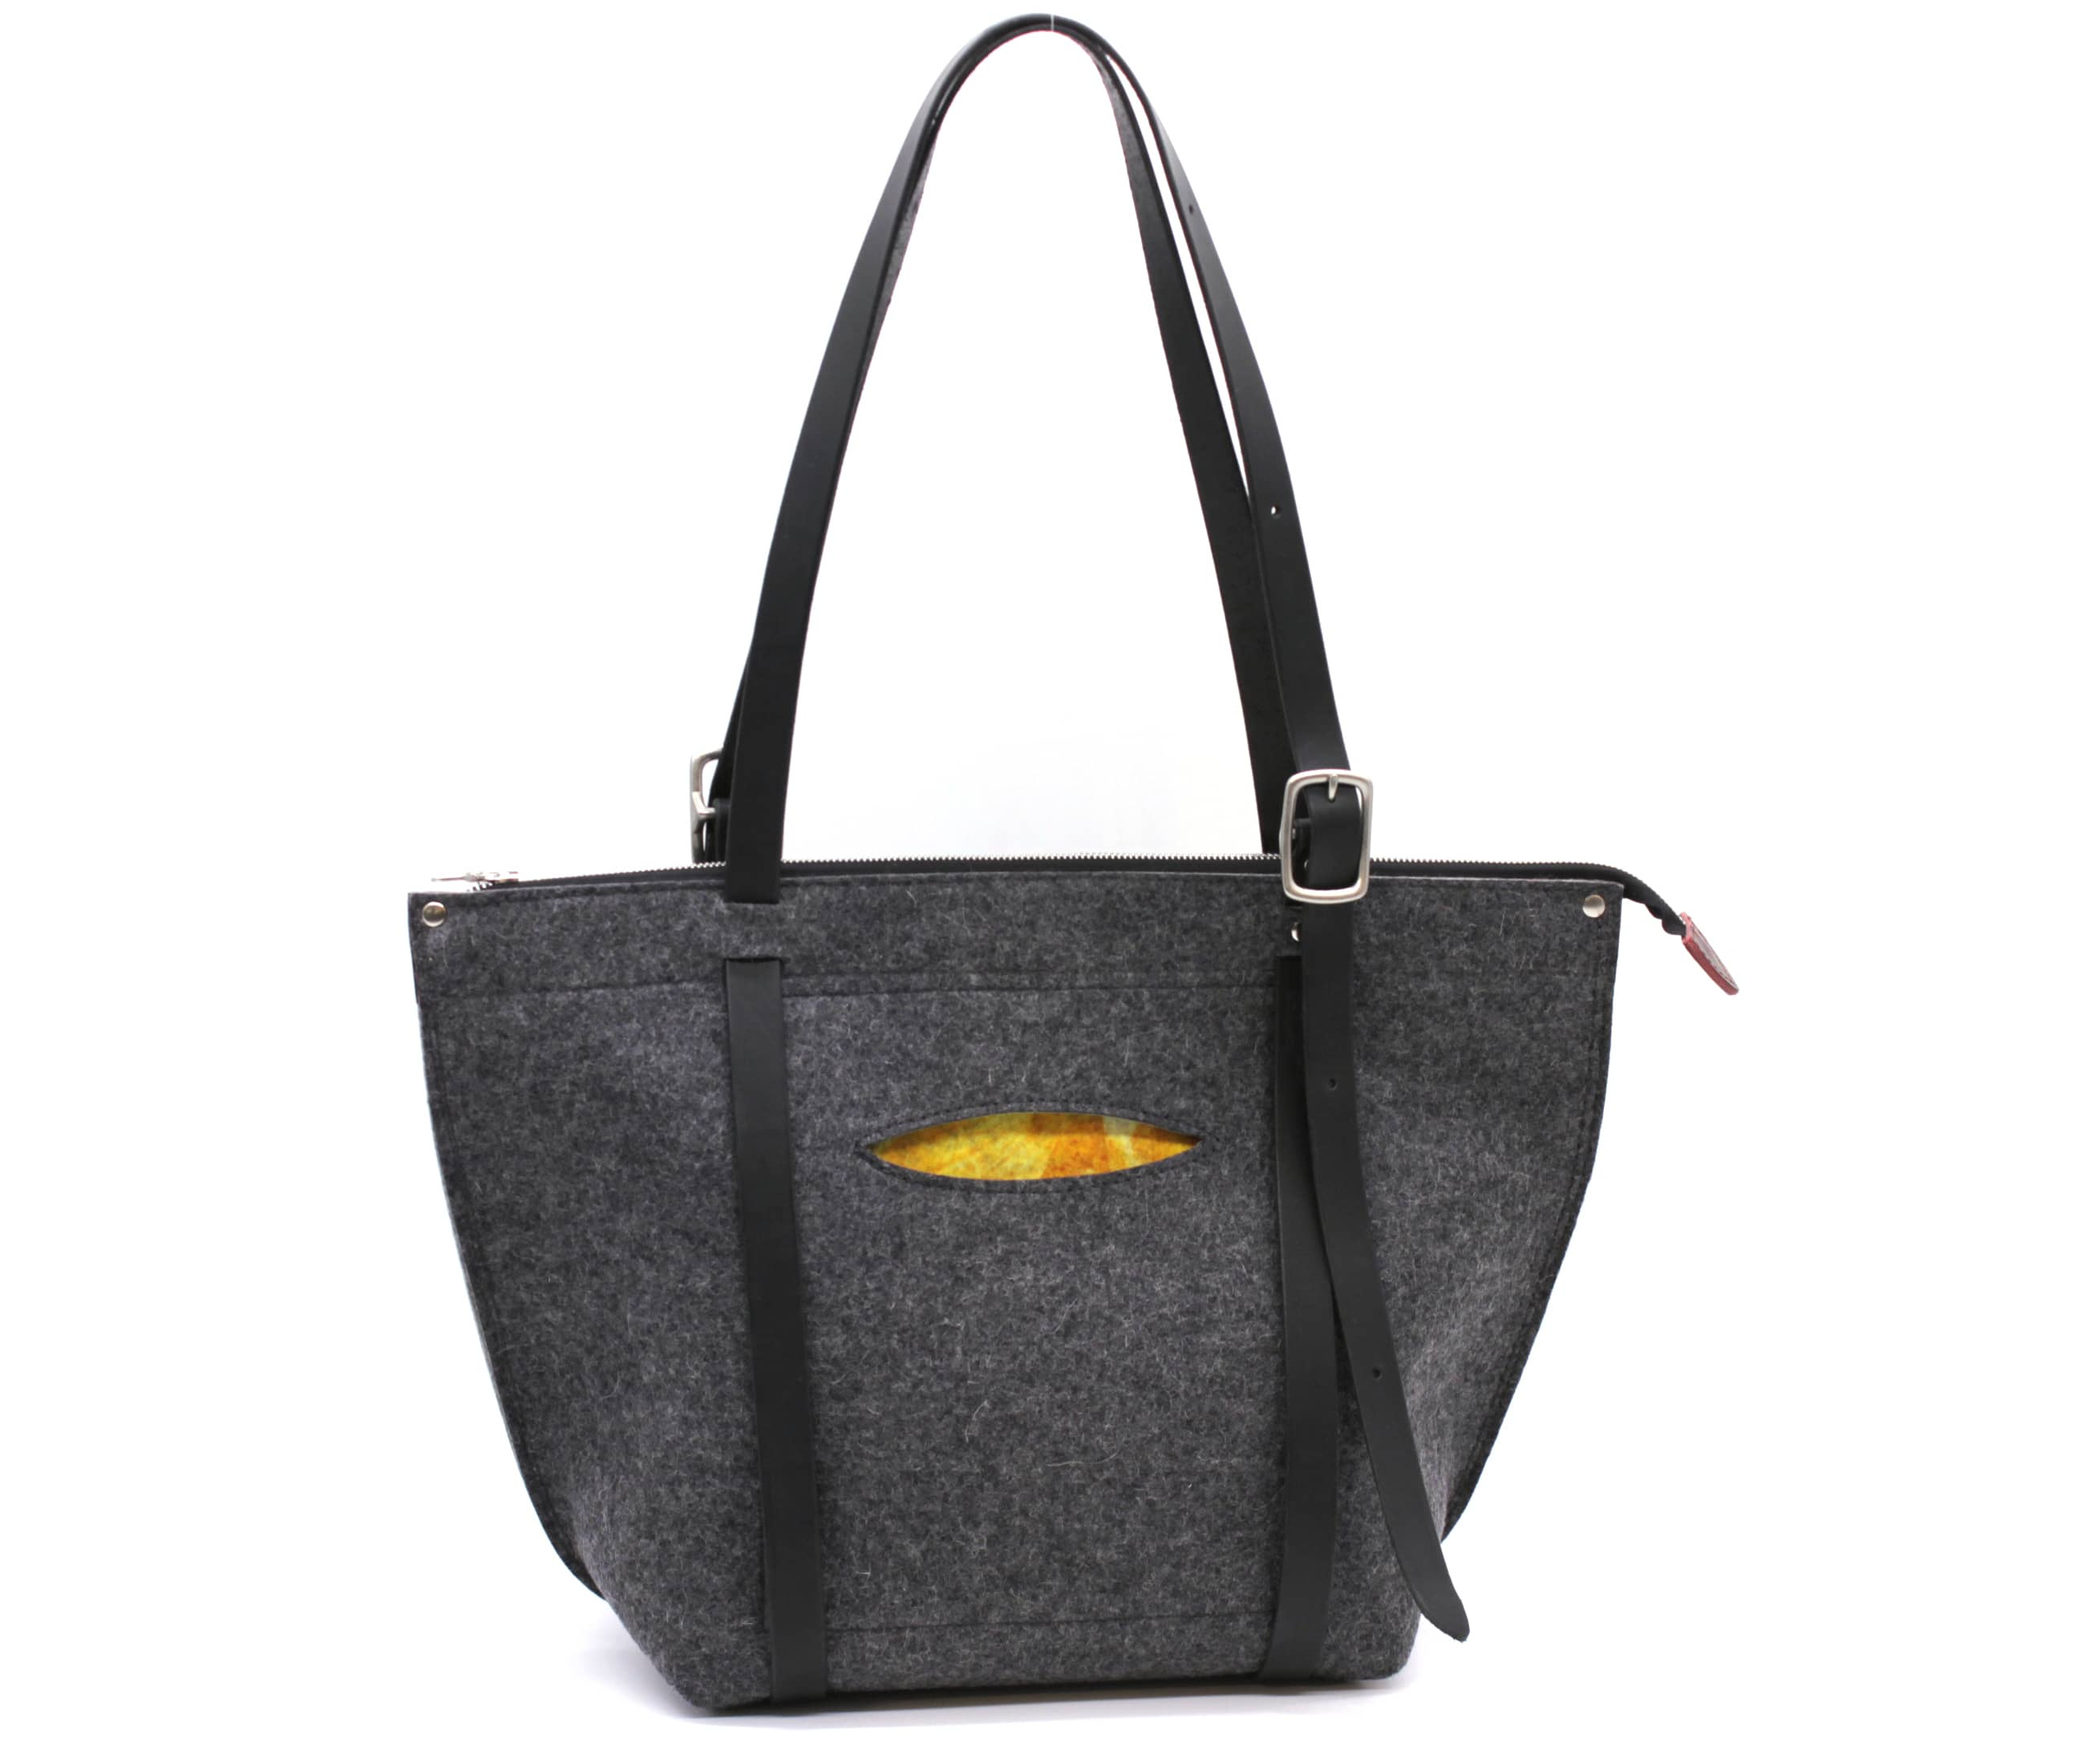 /az0068002-01_wqeona.jpg view of the Tote / Backpack Crossover by Azellaz